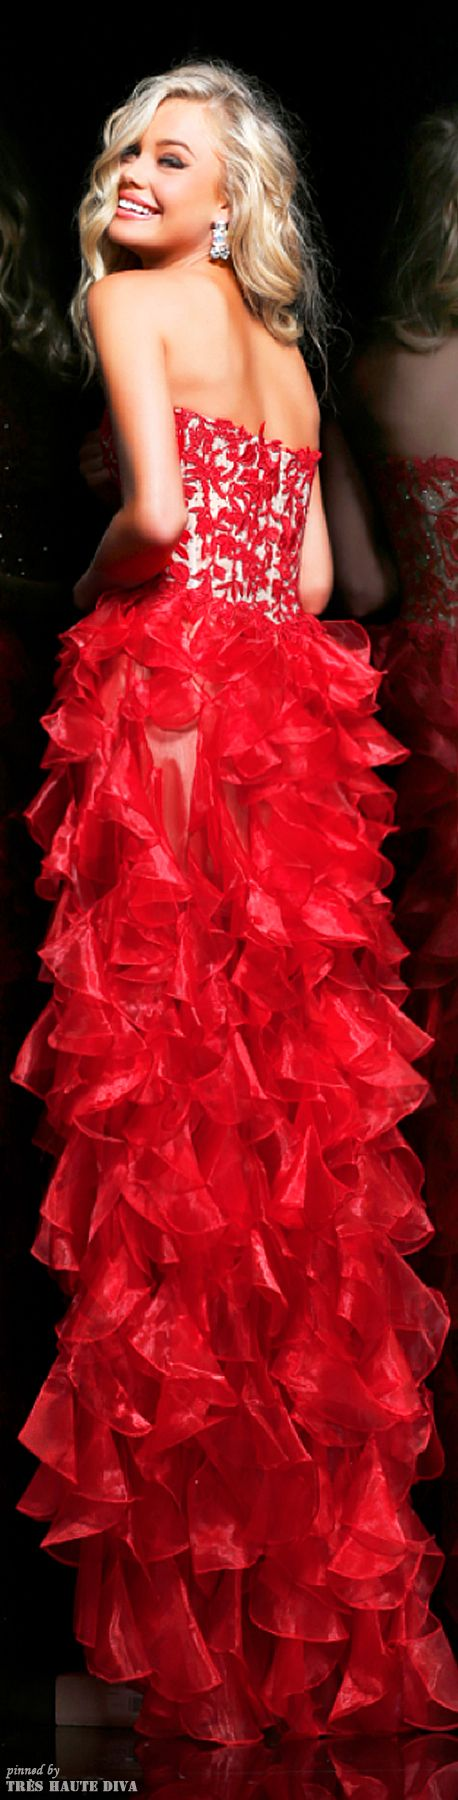 best red dress images on pinterest red fashion high fashion